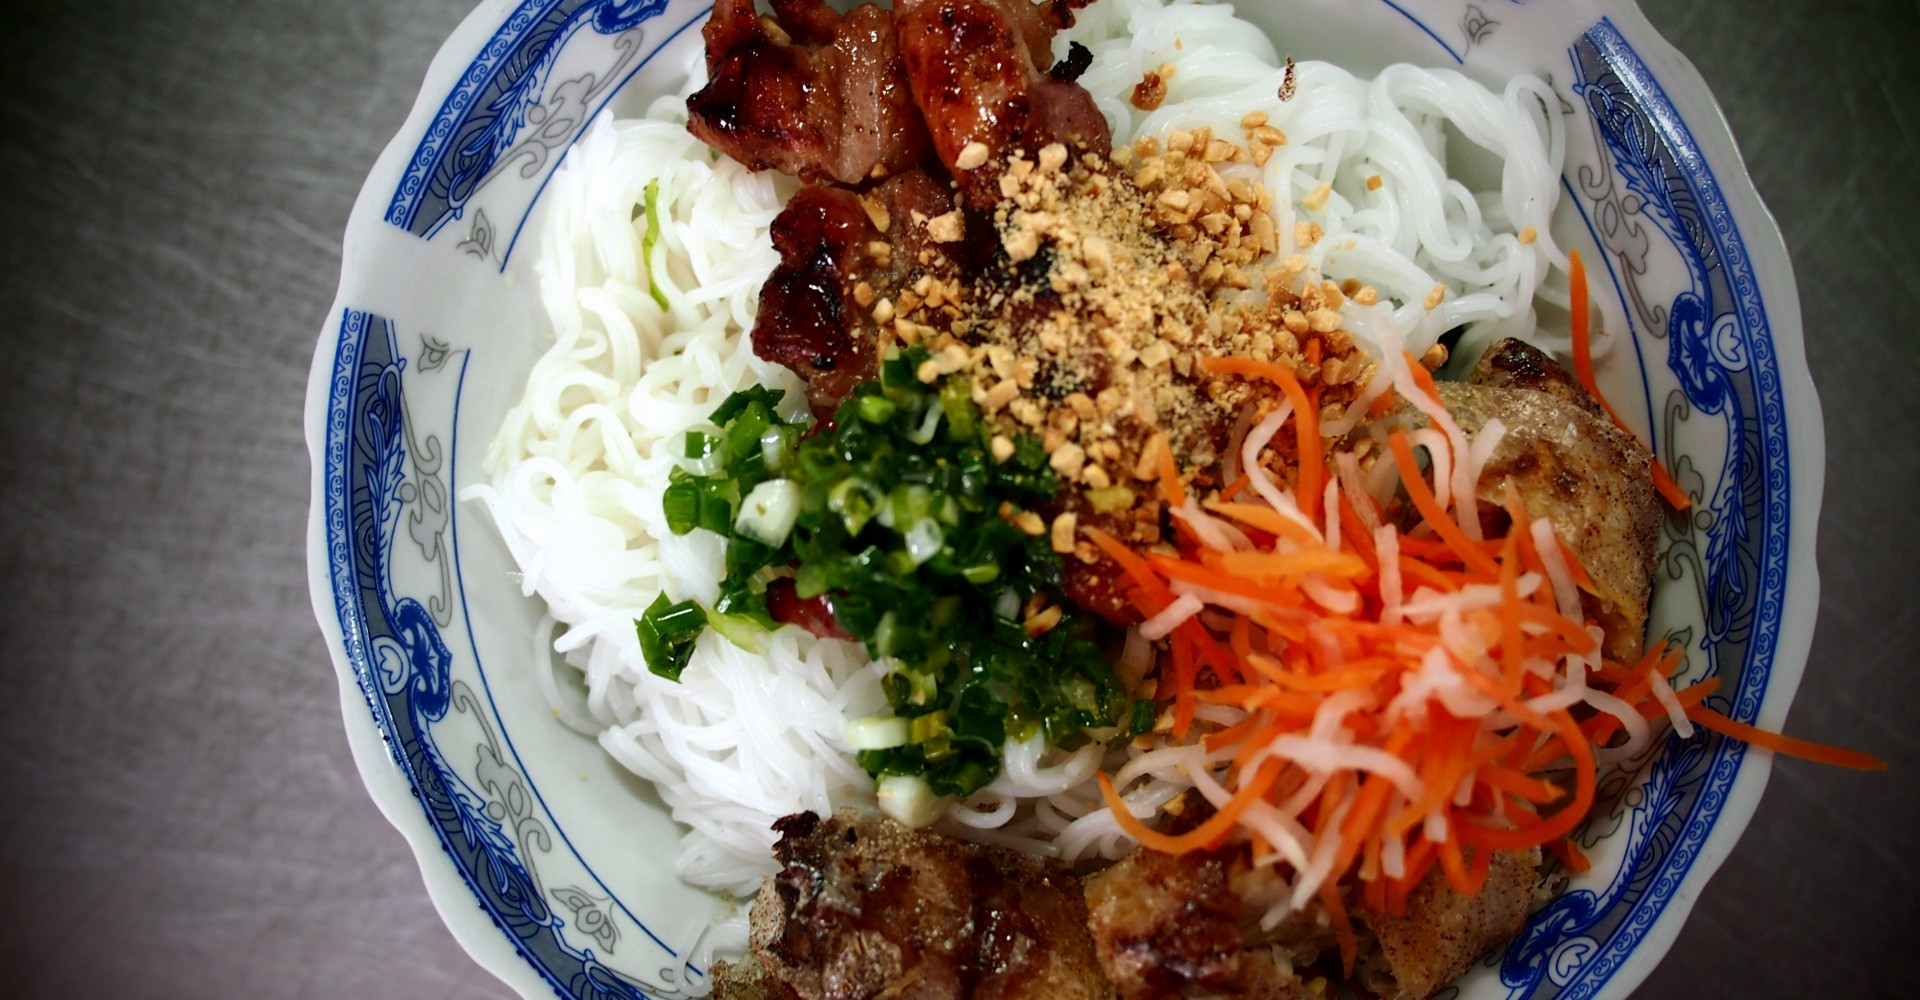 Where to Find the Best Vietnamese Food in Ottawa